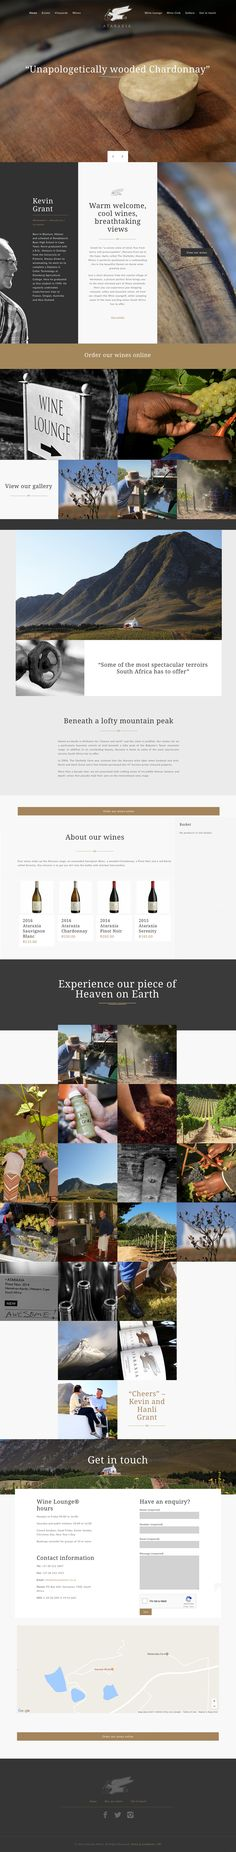 Ataraxia Wines: Strategy / Branding and Identity / Digital Marketing / Integrated Media Campaigns / Information Architecture